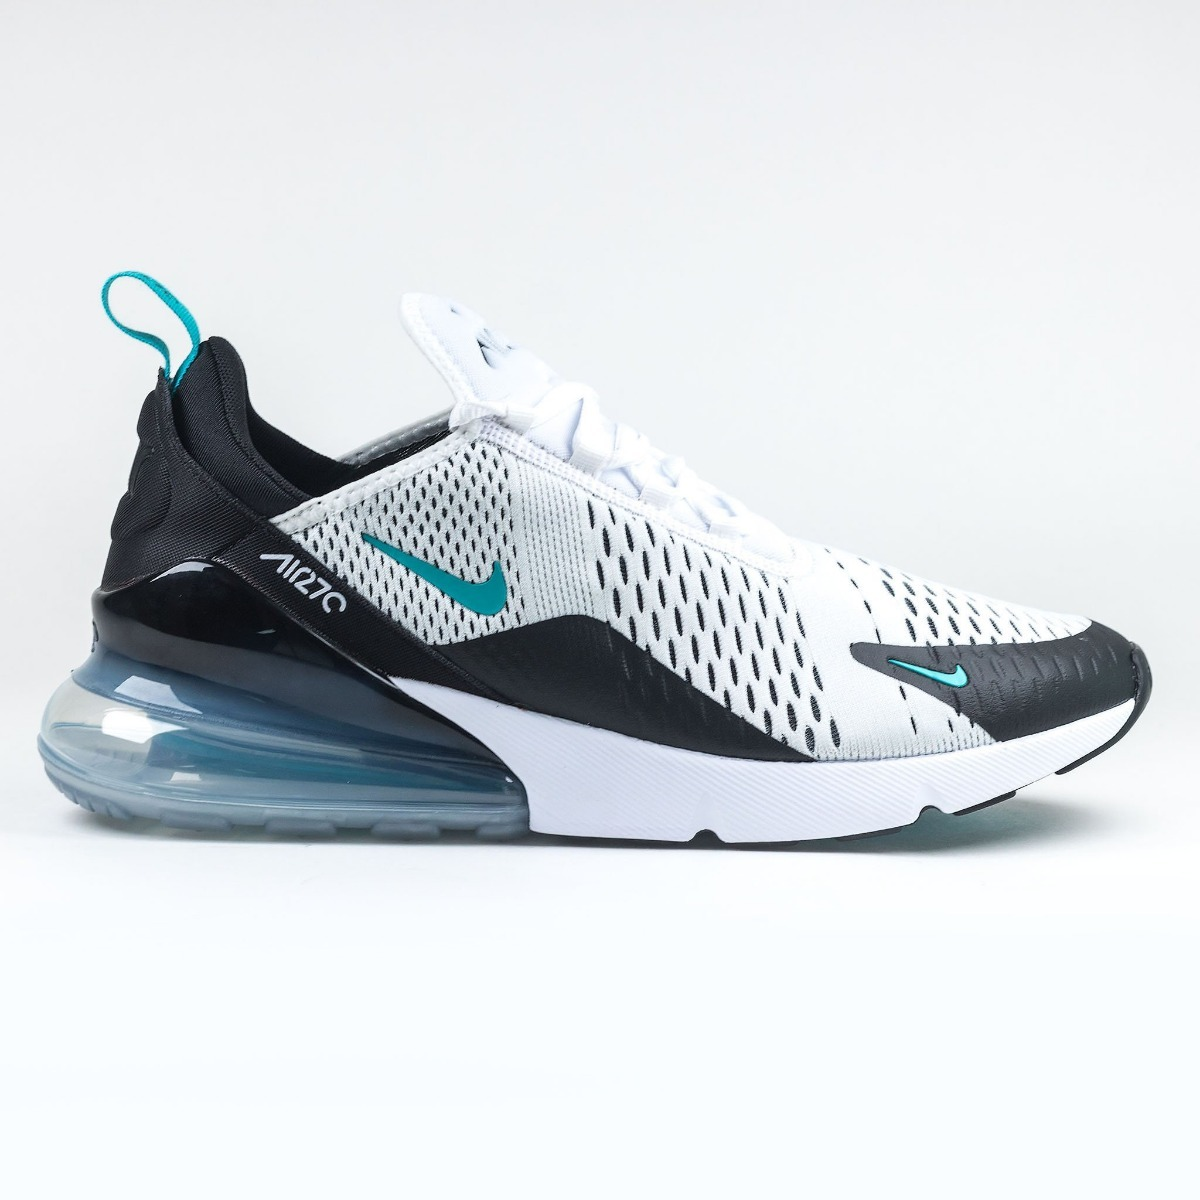 new products e0151 62d2a tenis nike air max 270 blancas unisex, zapatillas 2018. Cargando zoom.